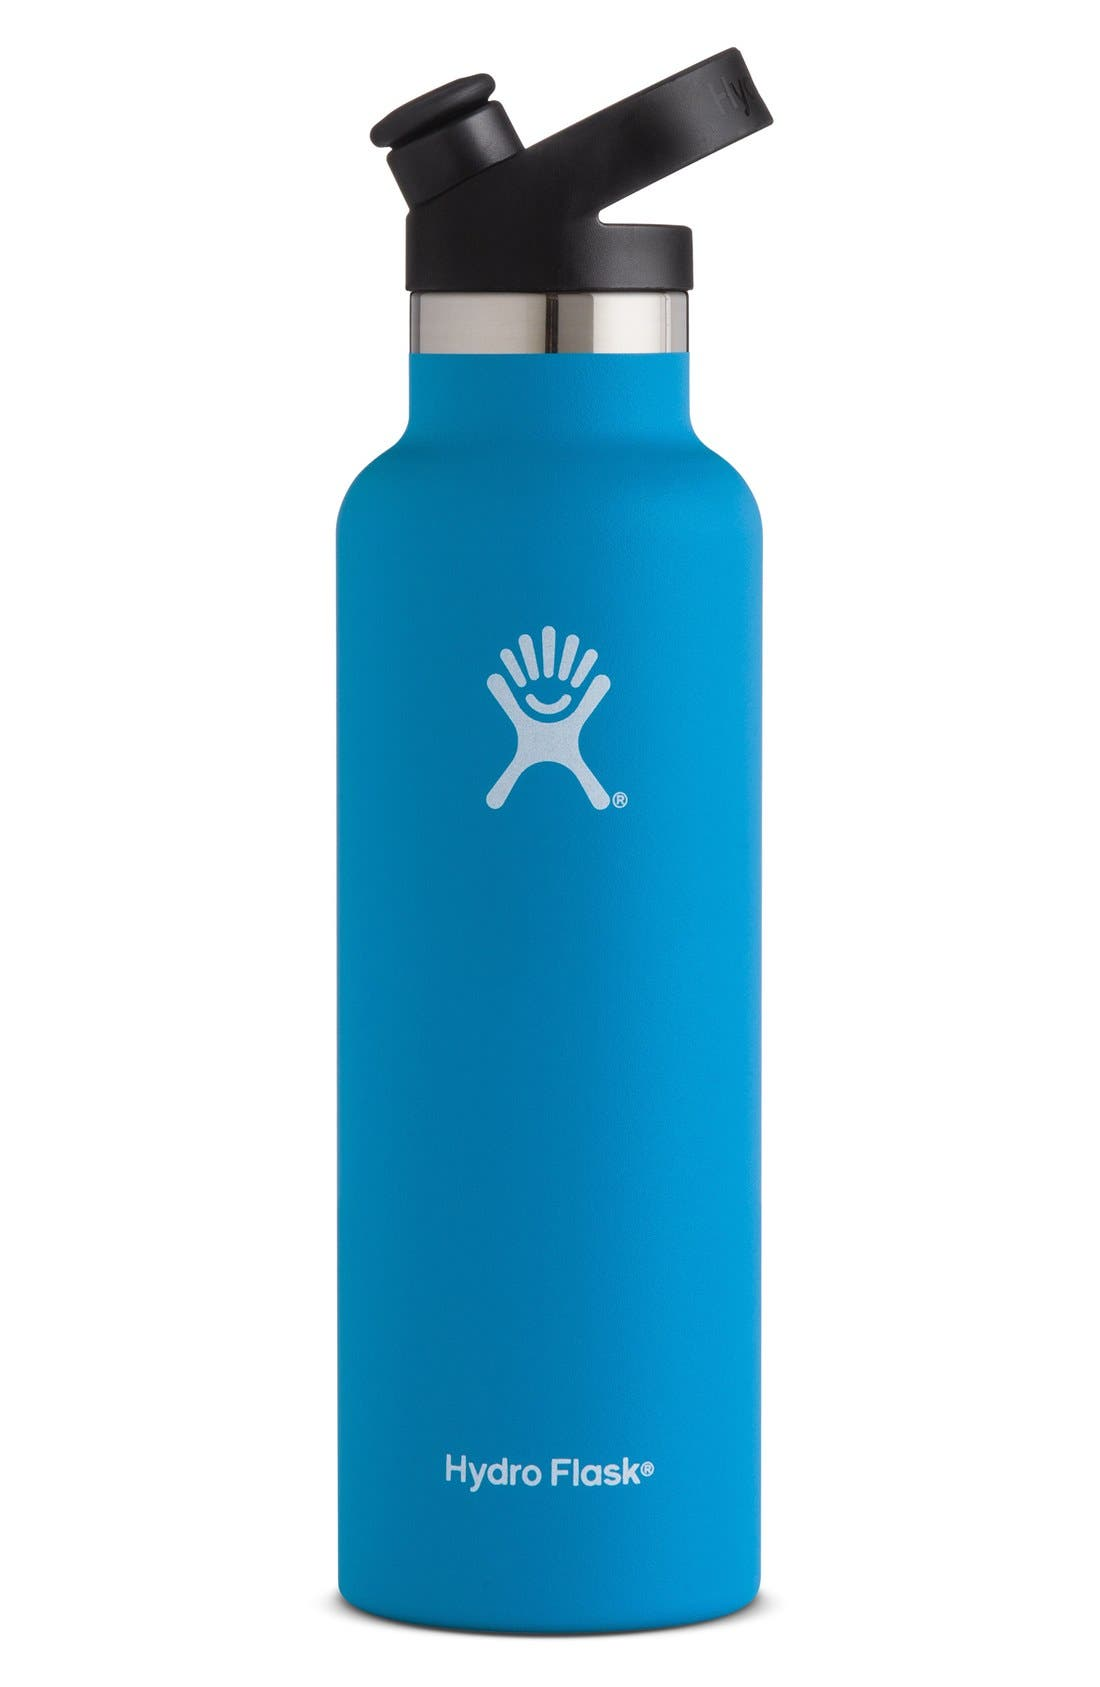 Hydro Flask 21-Ounce Standard Mouth Bottle with Sport Cap